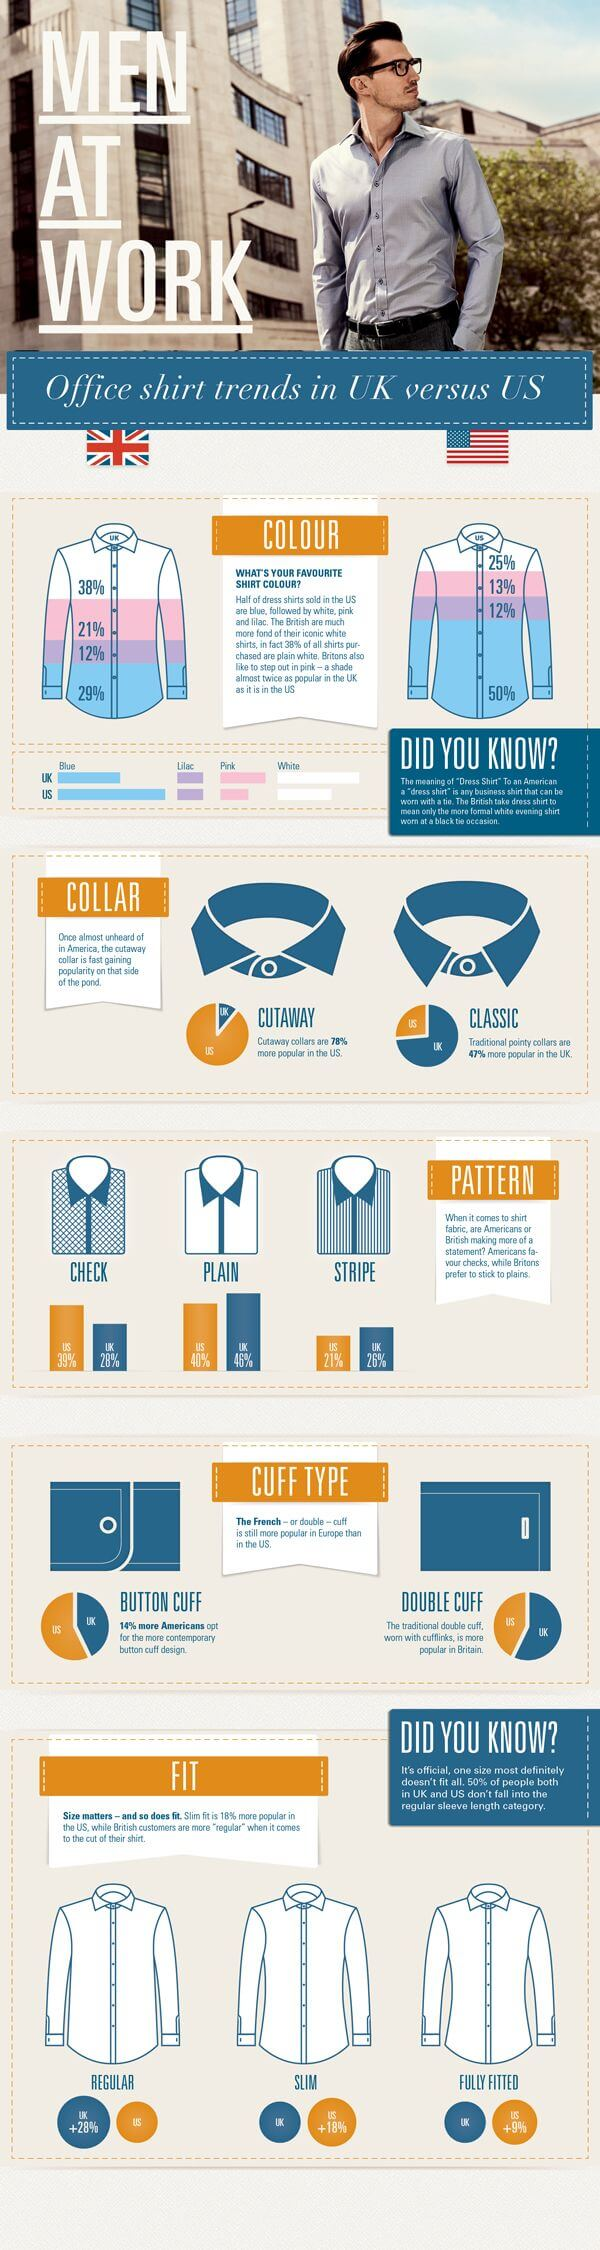 men-at-work-office-shirt-trend-in-uk-versus-us-tips-tipsographic